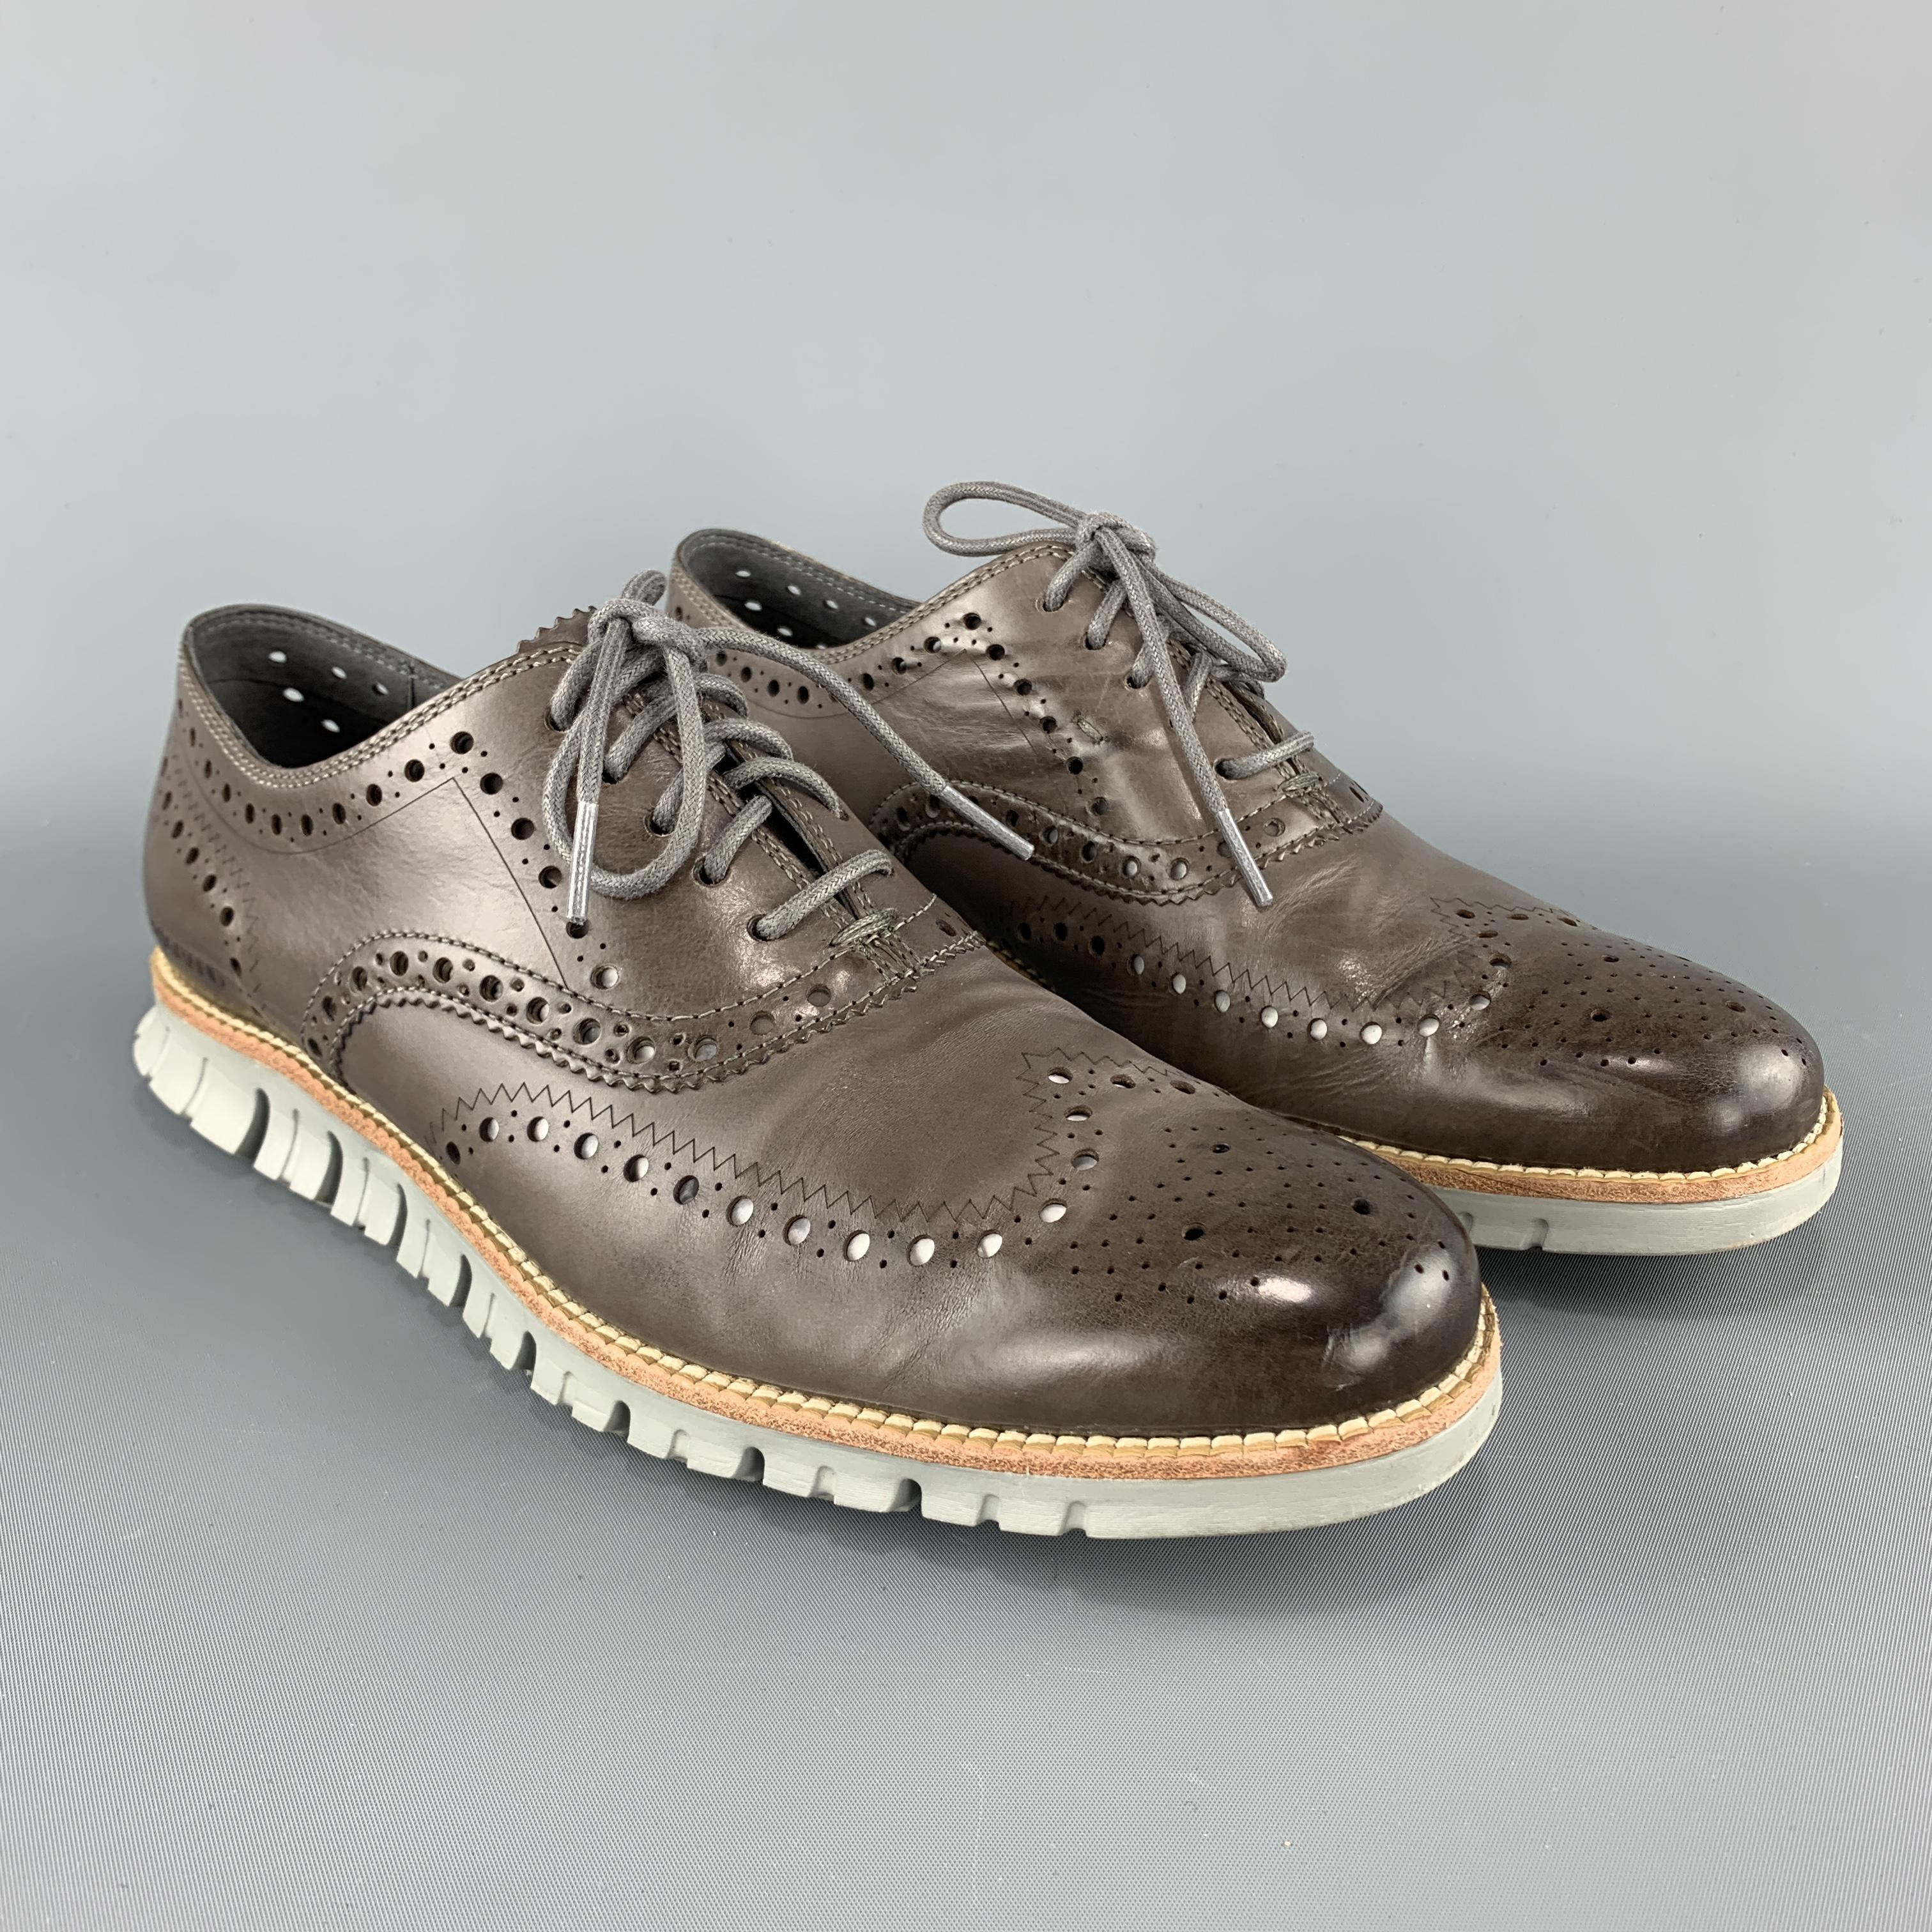 COLE HAAN 8.5 Taupe Brown Perforated